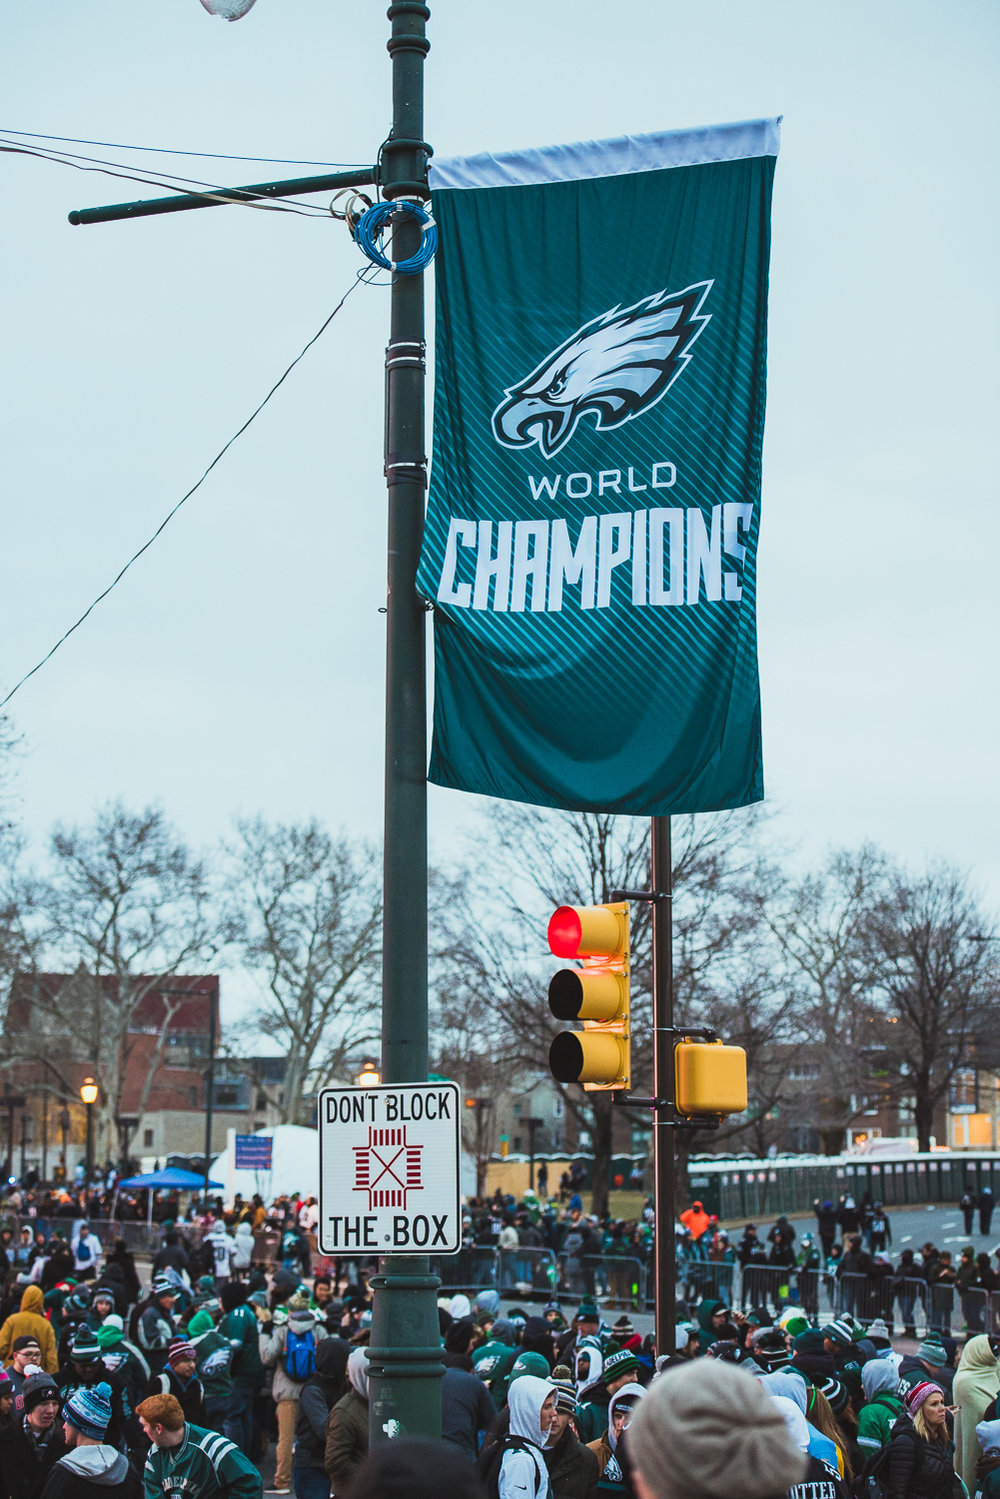 20170208 - Eagles Super Bowl Parade-10.jpg